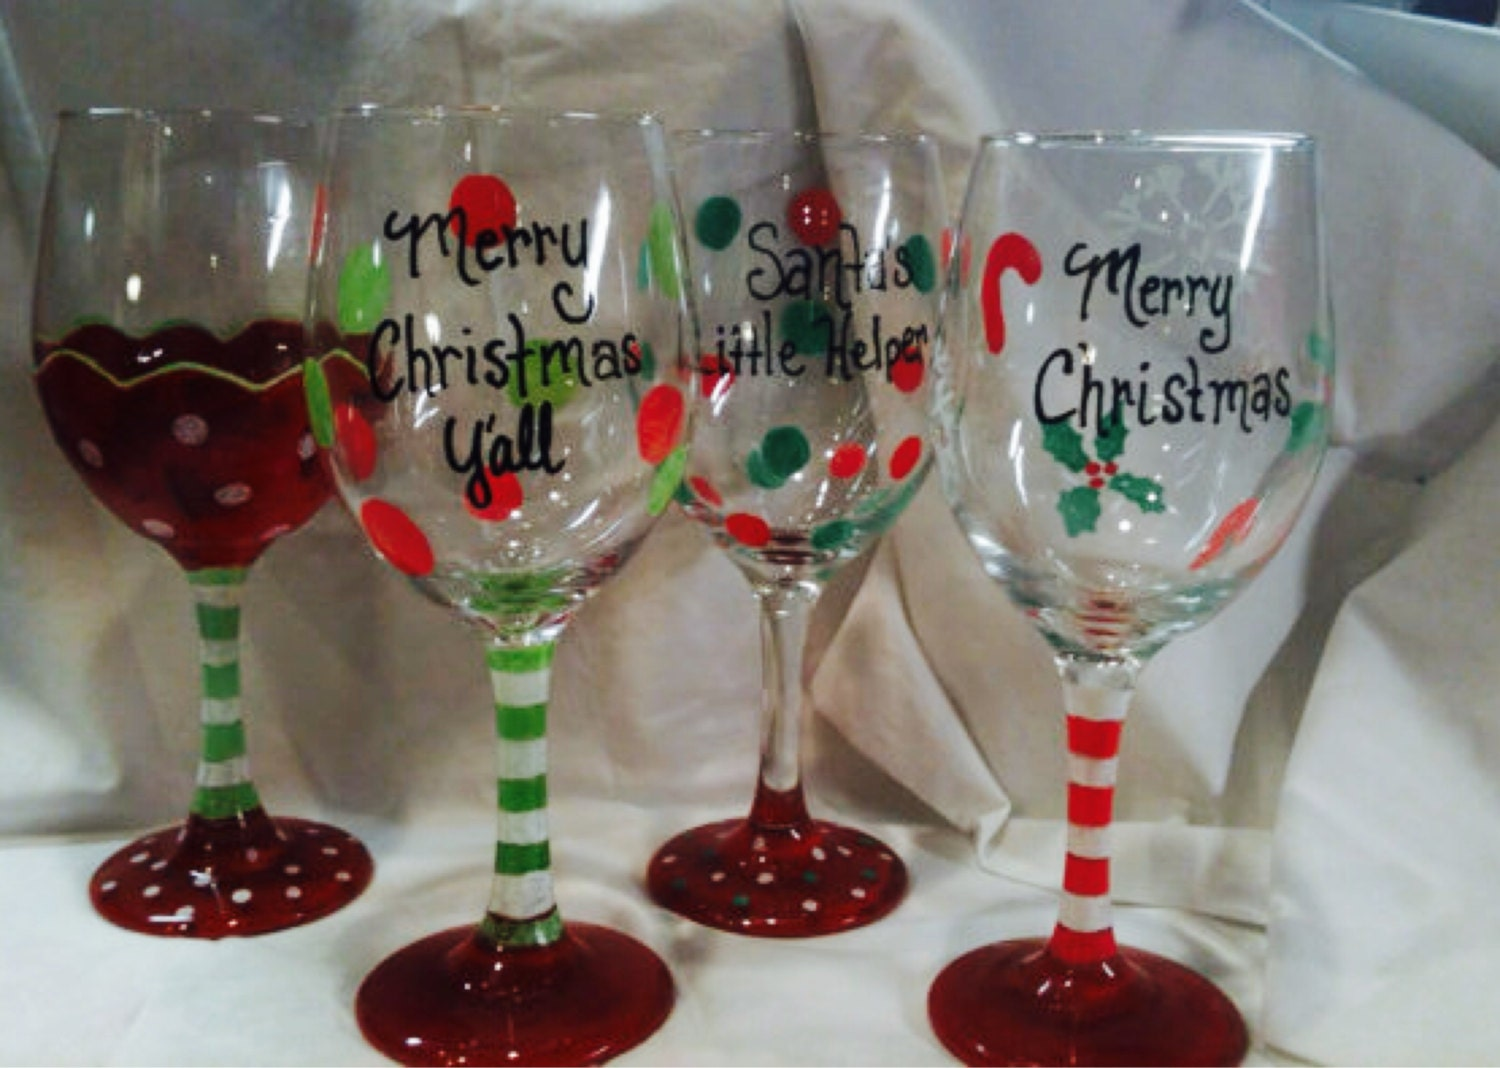 Christmas wine glass hand painted custom order personalized for Hand painted wine glass christmas designs